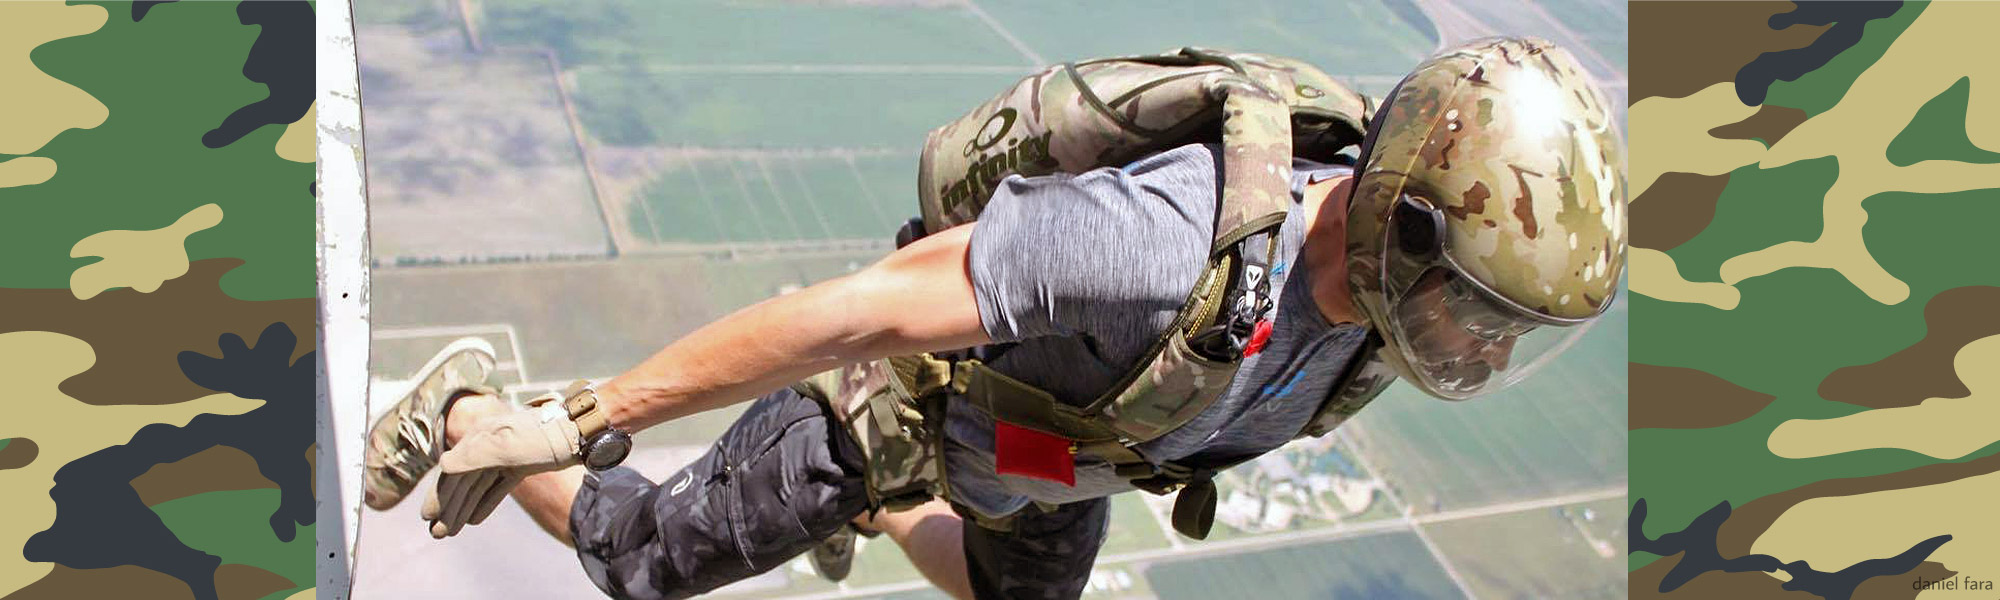 Skydive Spaceland military transition program